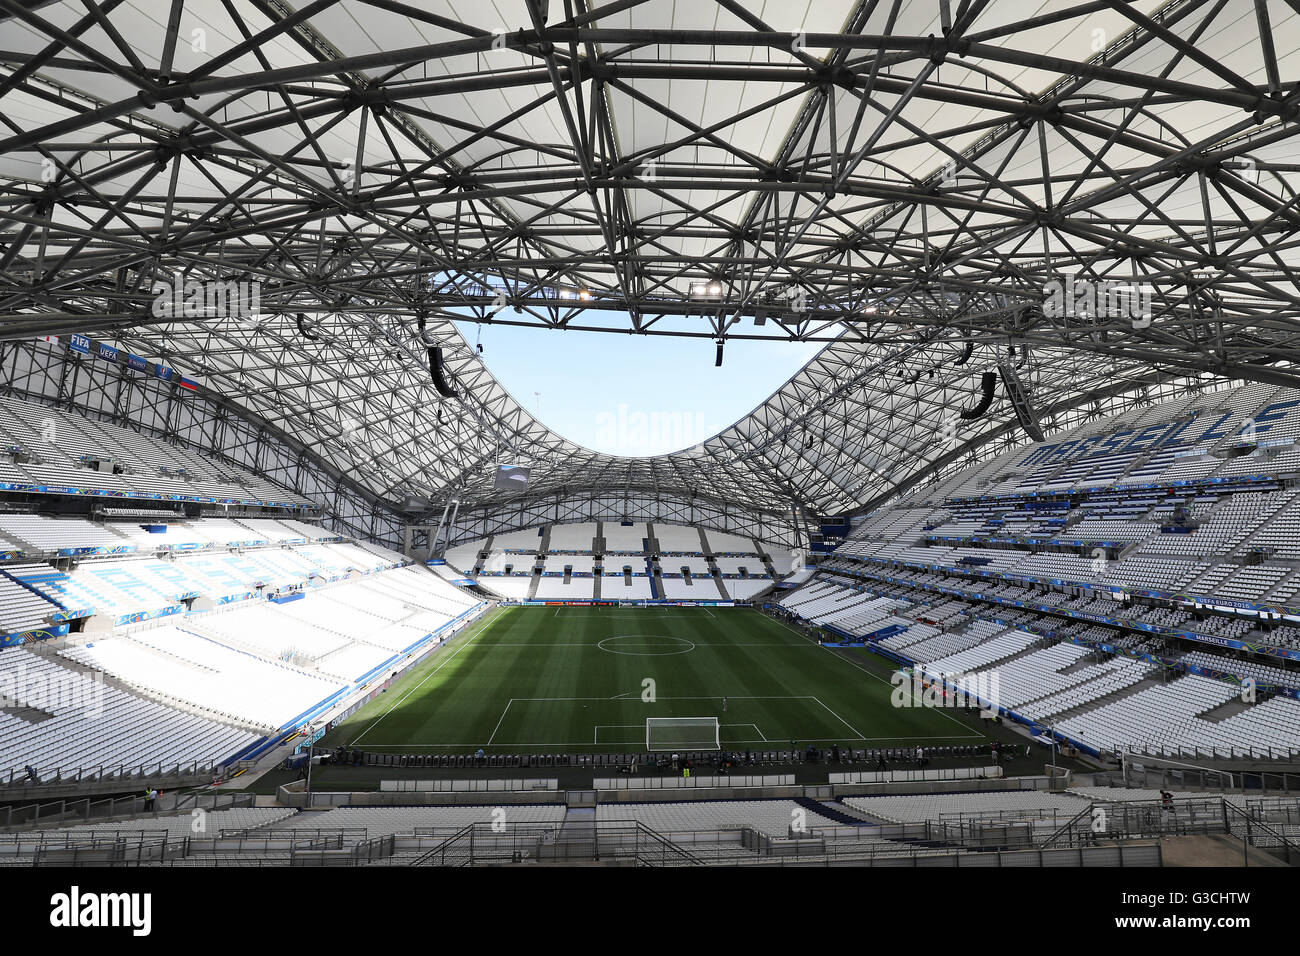 A view of the pitch at the Stade Velodrome, Marseille. - Stock Image